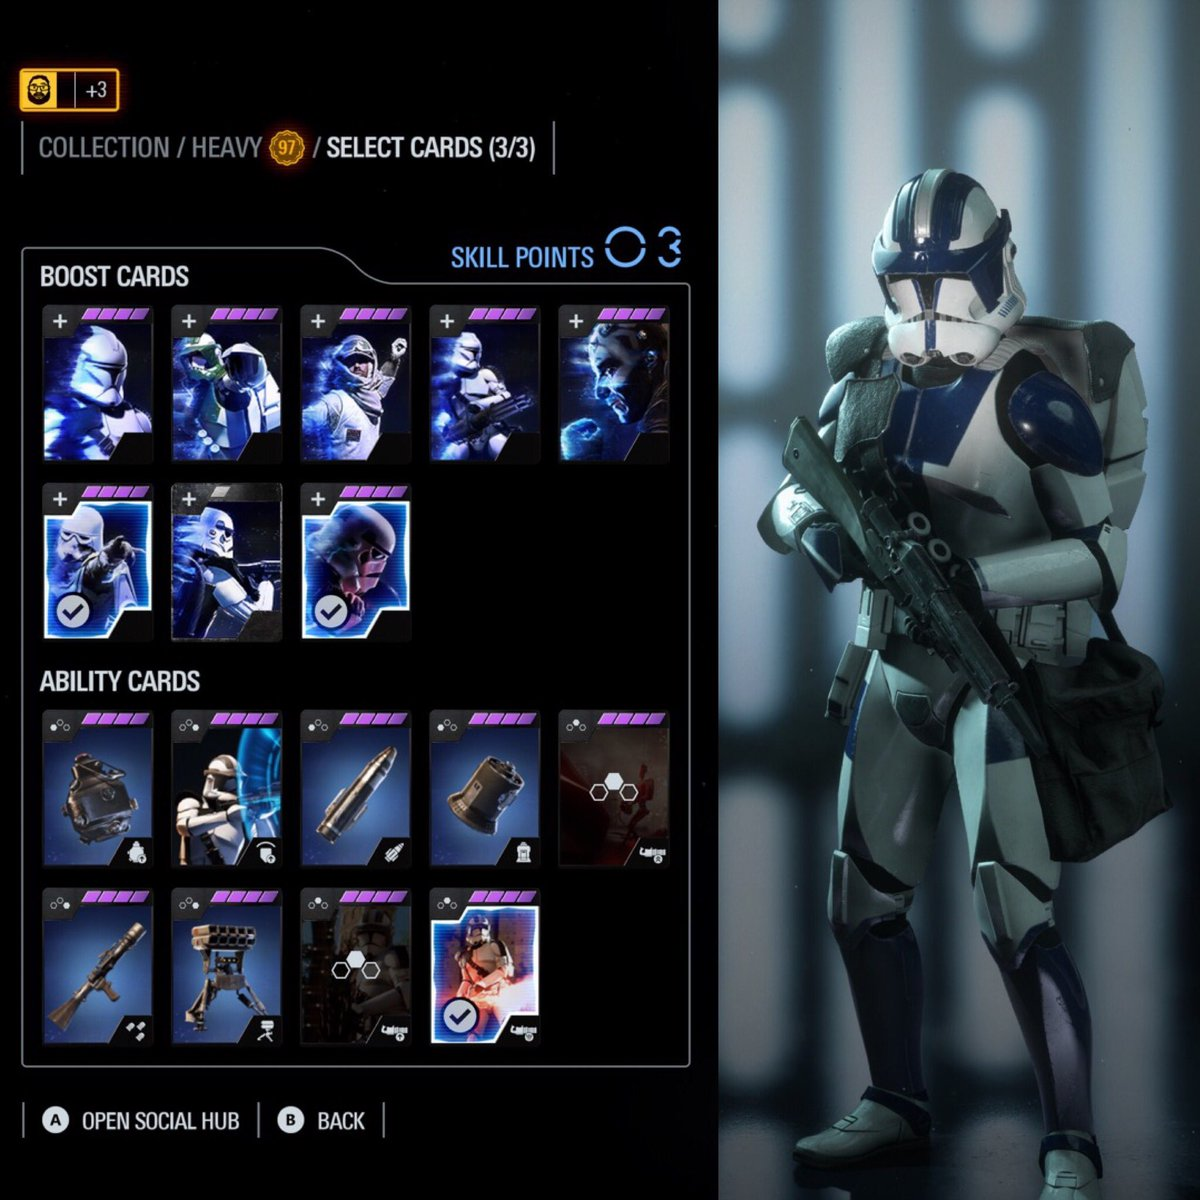 test Twitter Media - Maxed out heavy class. What's your favorite class in battlefront 2? #battlefront2 #starwars #twitch #twitchstreamer #twitchgaming #twitchtv #twitchgamer #twitchgirls #nes #snes #nesclassic #snesclassic #nintendo #nintendoswitch #xboxone #xbox #follow #lowbudgetstreamer https://t.co/i7VSpTg5So